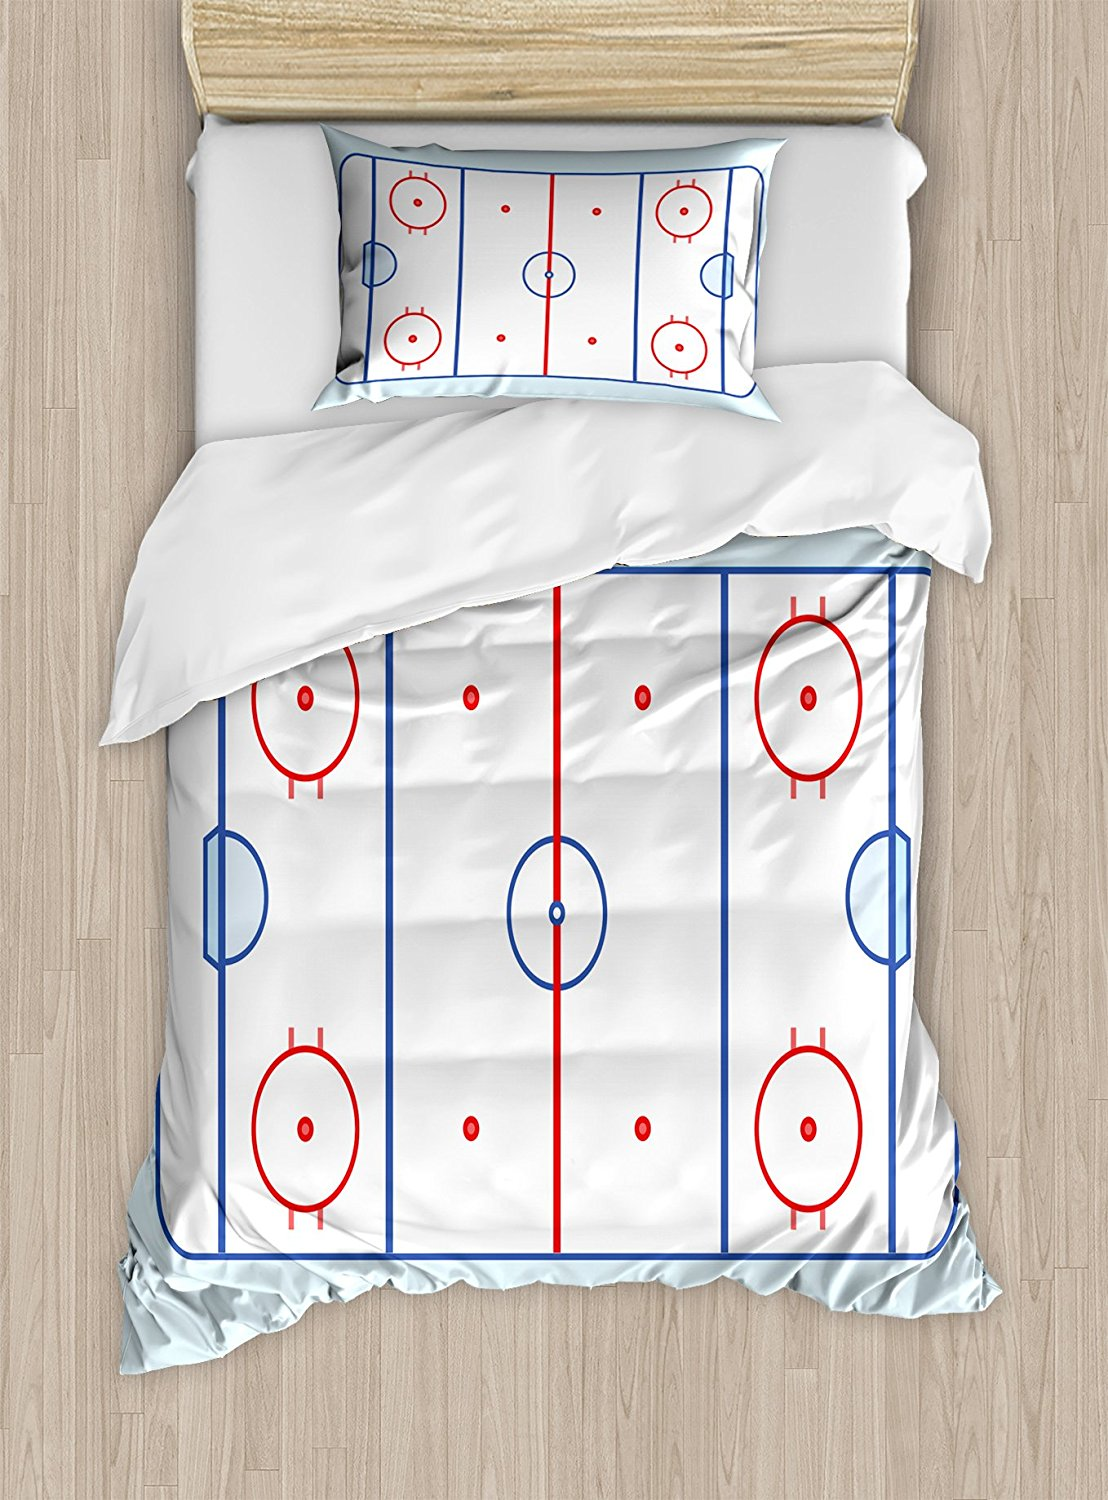 Hockey Duvet Cover Set Ice Hockey Field in Blue Tones and Red Graphic Outline for Sport Events Decorative 4 Piece Bedding Set